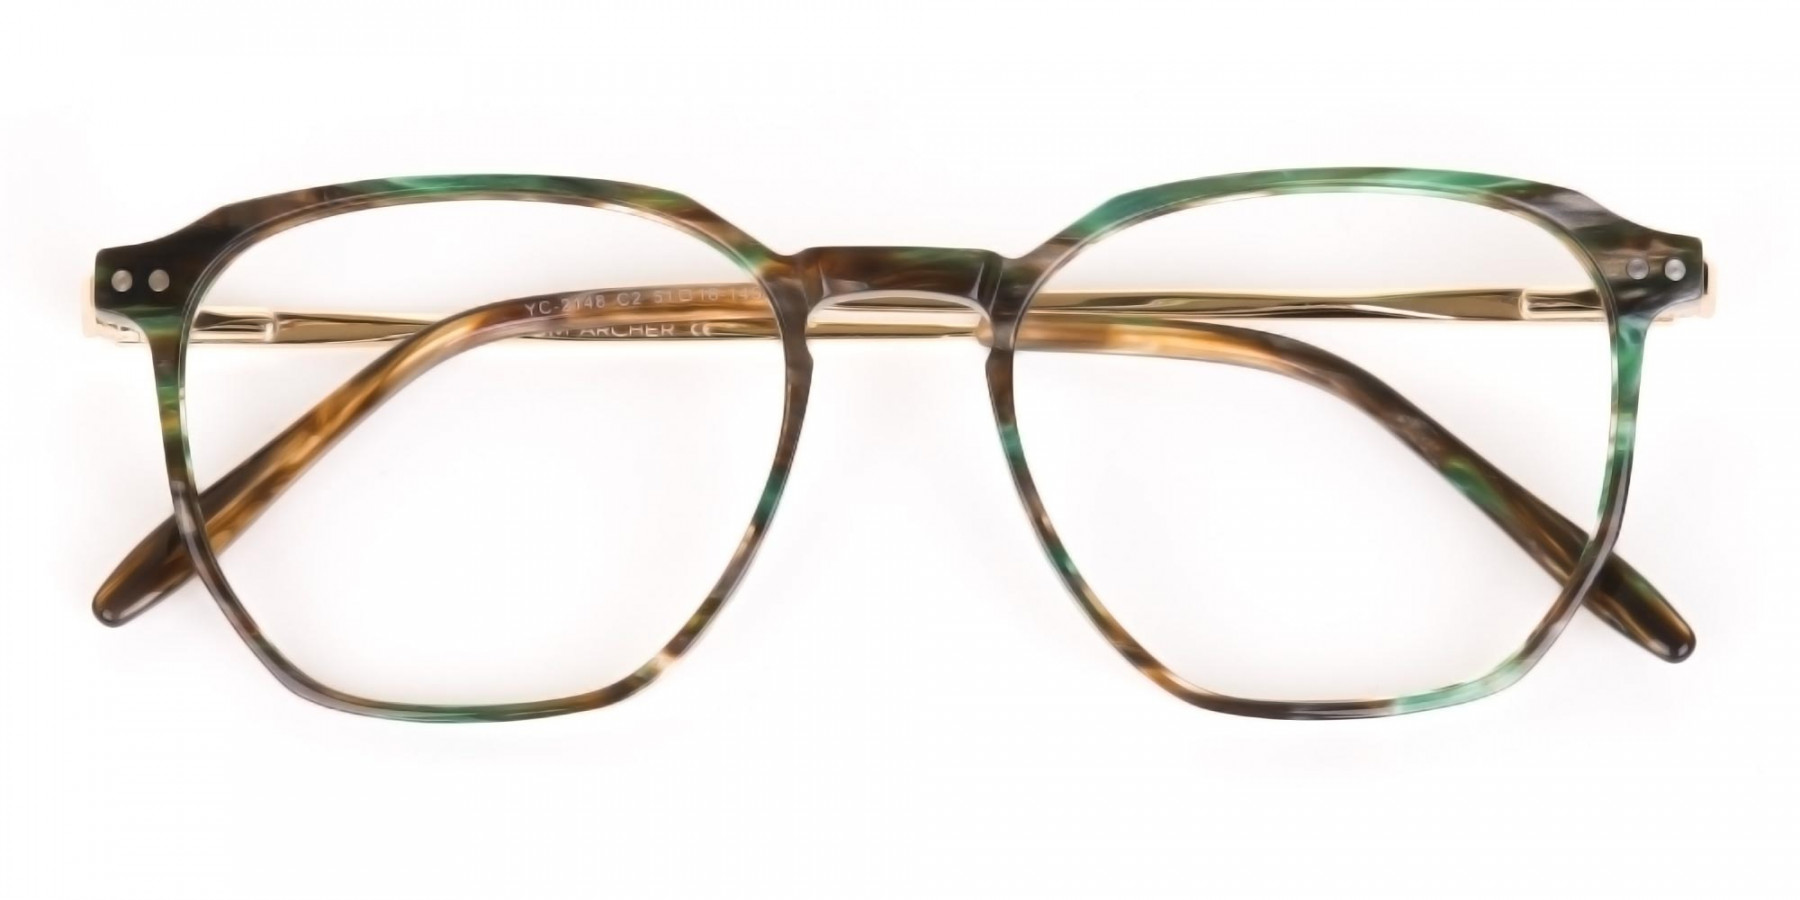 Jade Green & Brown, Gold Geometric Glasses-1